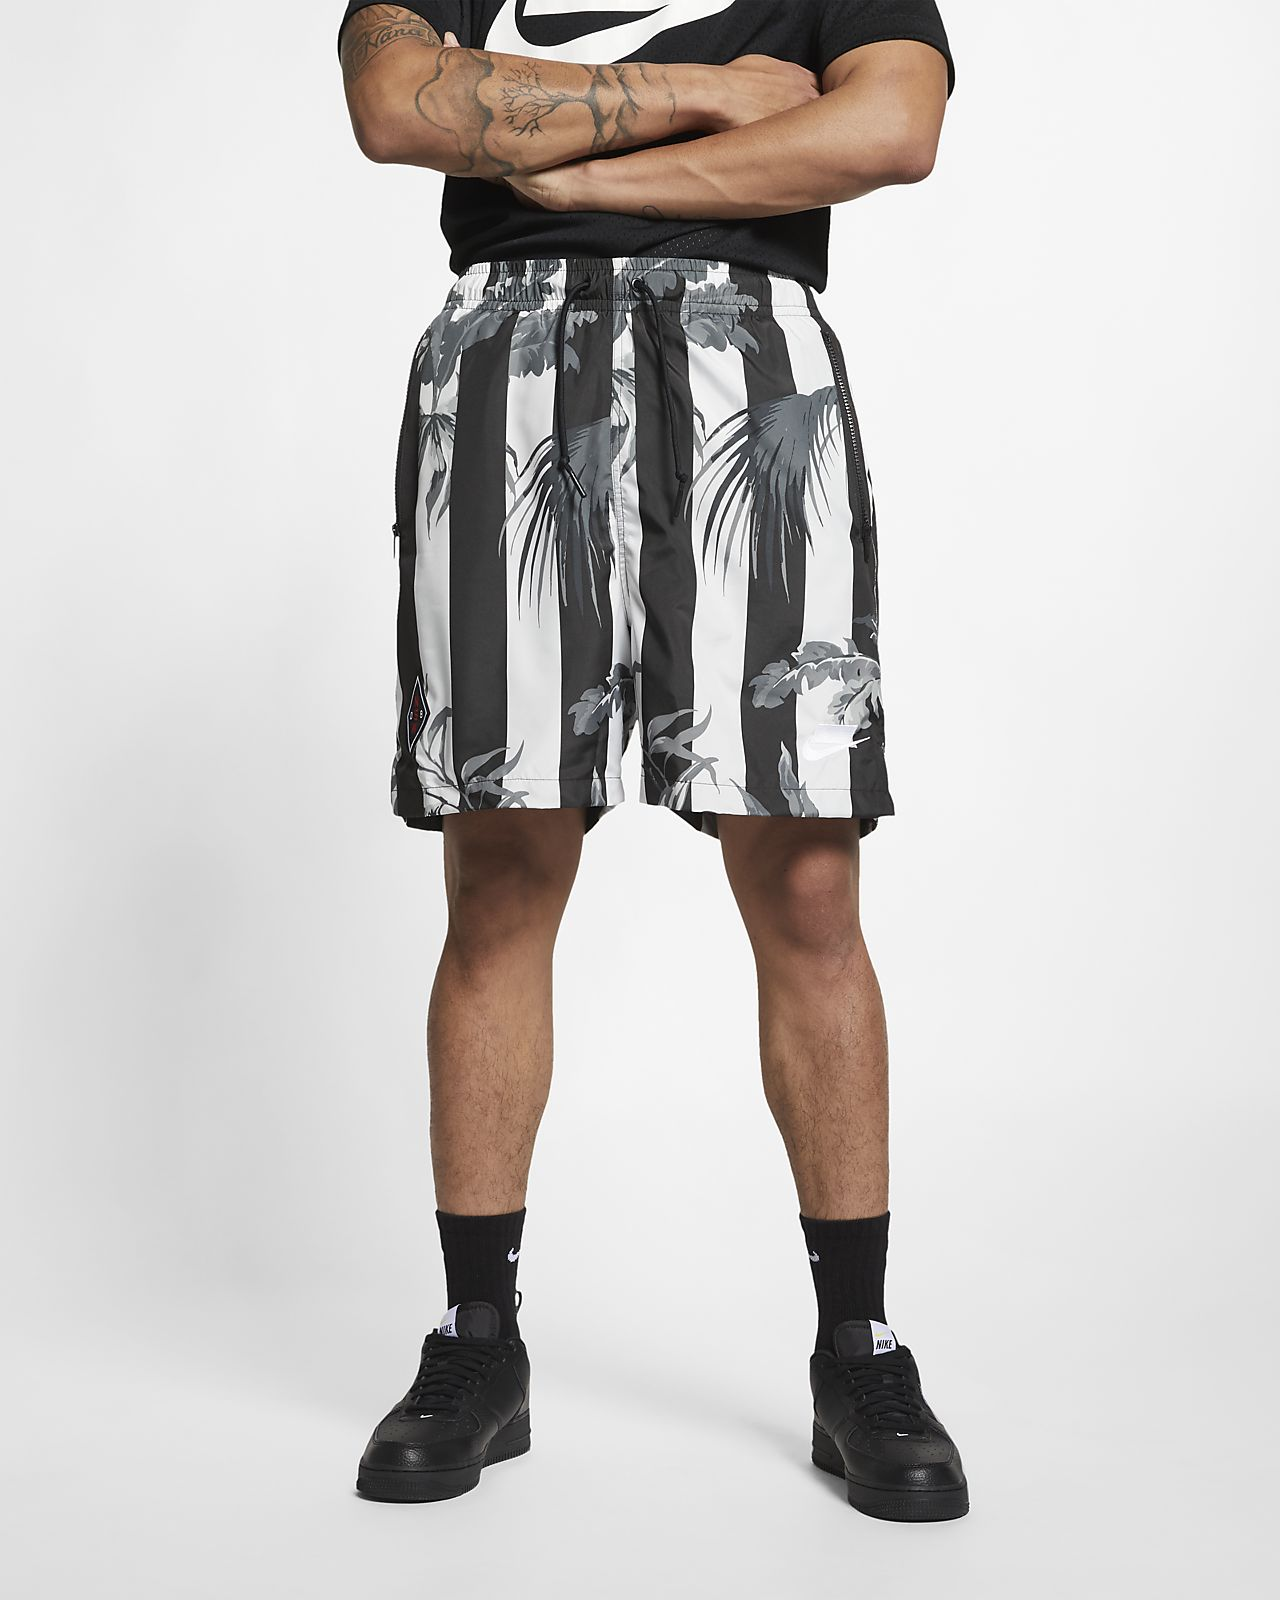 Nike Sportswear NSW Men's Striped Shorts